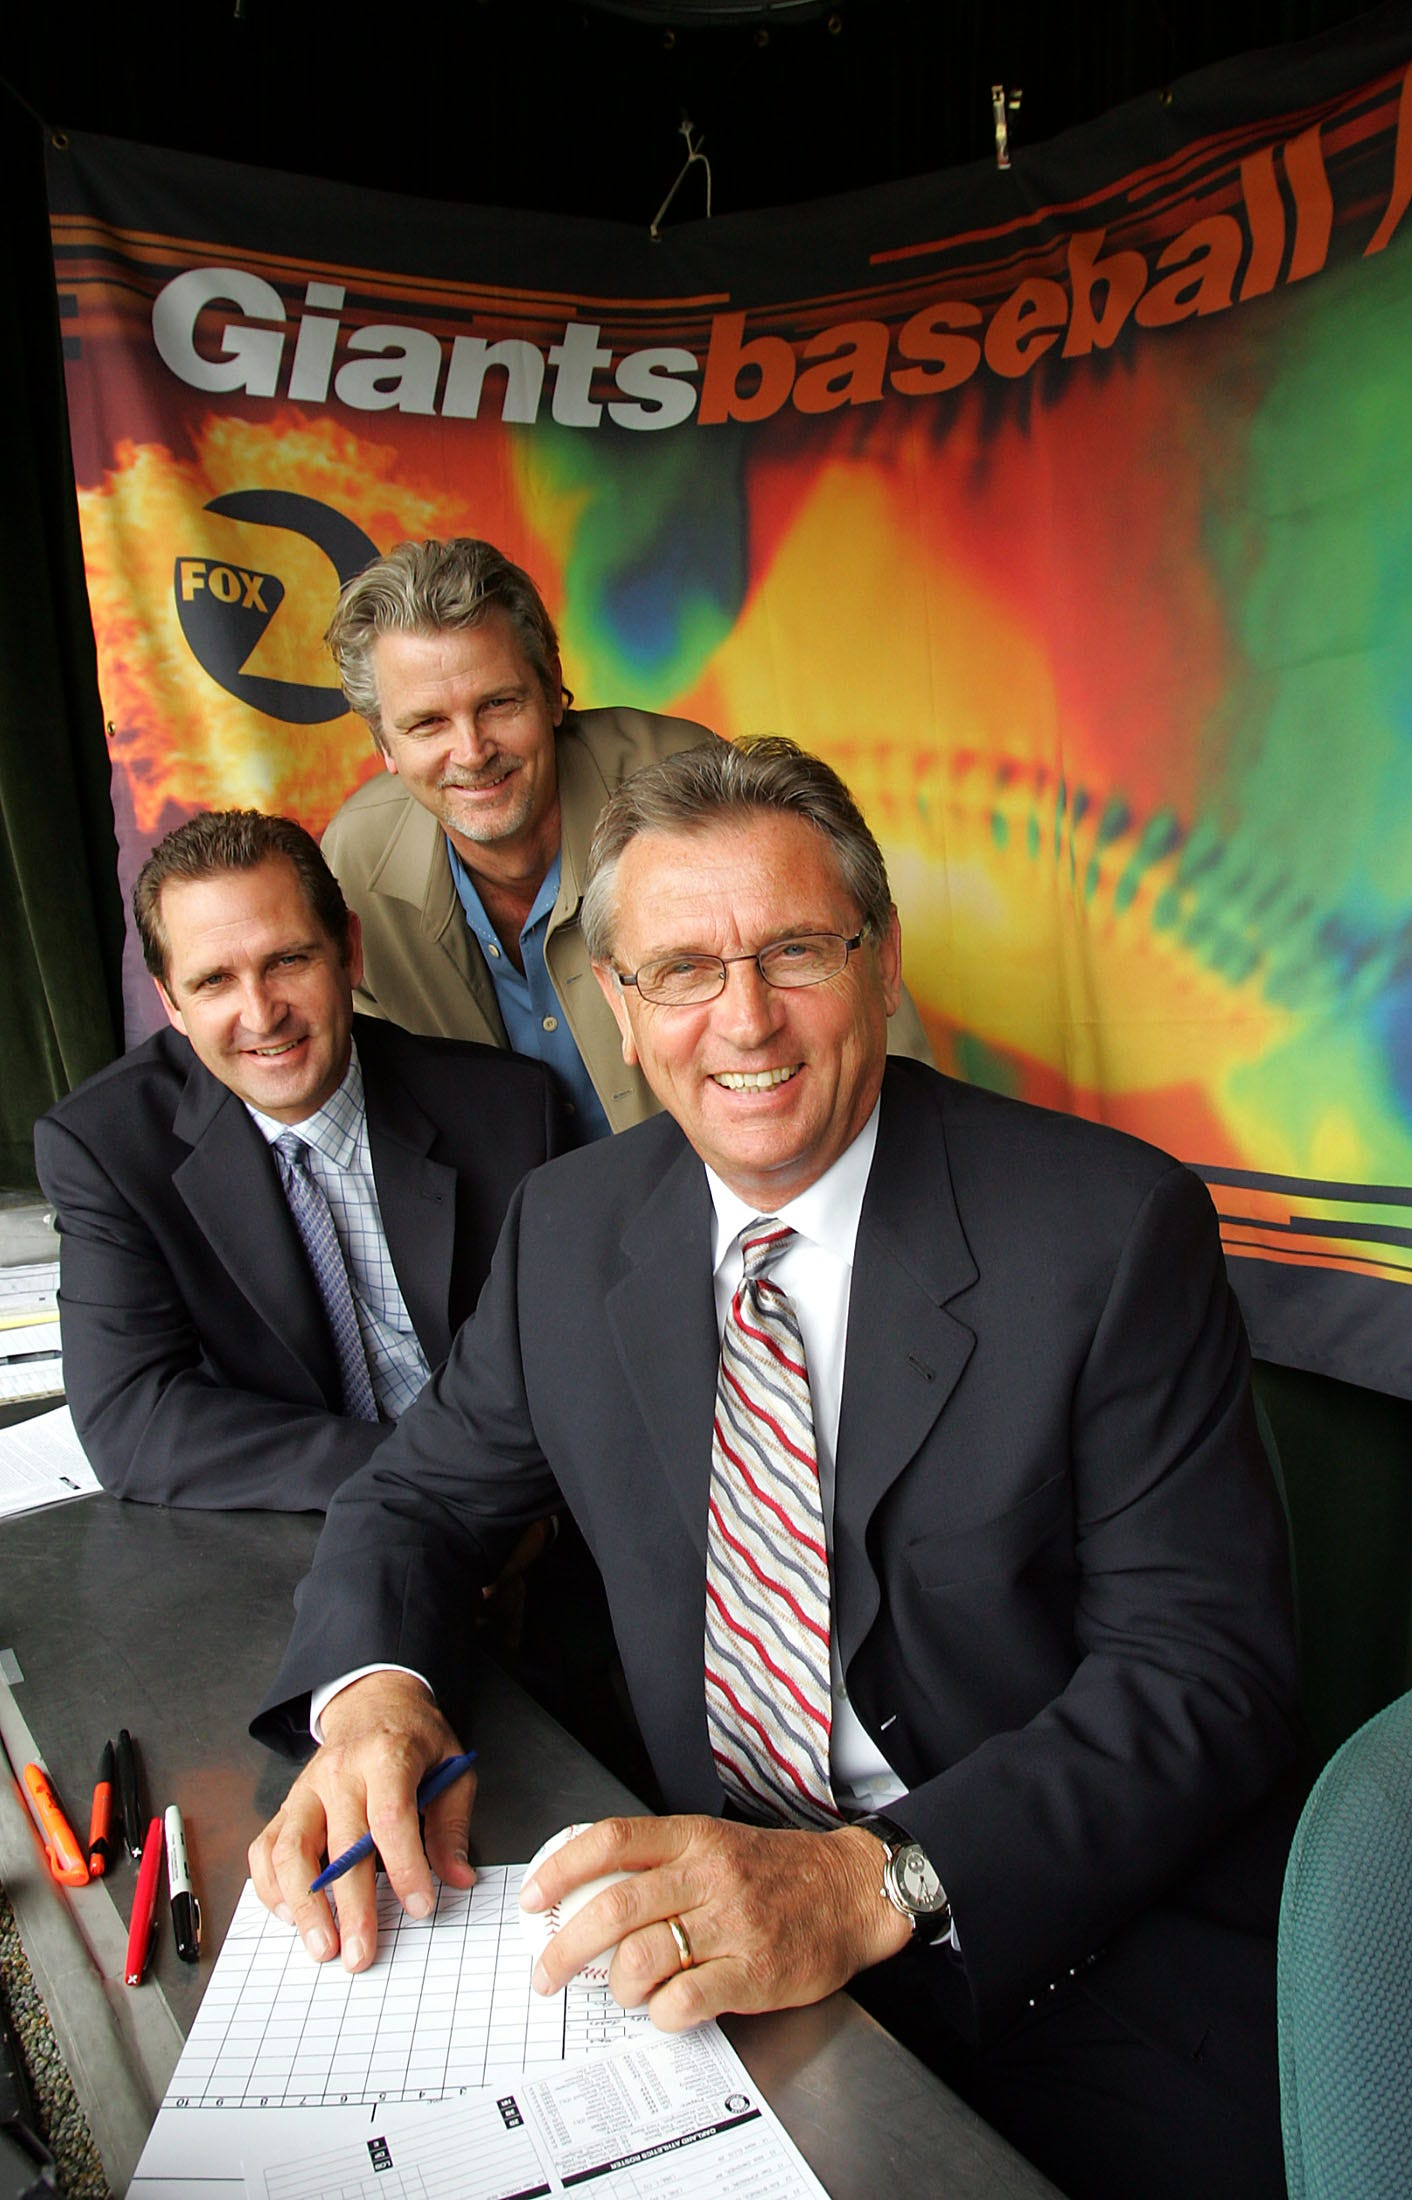 S.F. Giants broadcaster Duane Kuiper to miss games while undergoing chemotherapy treatment